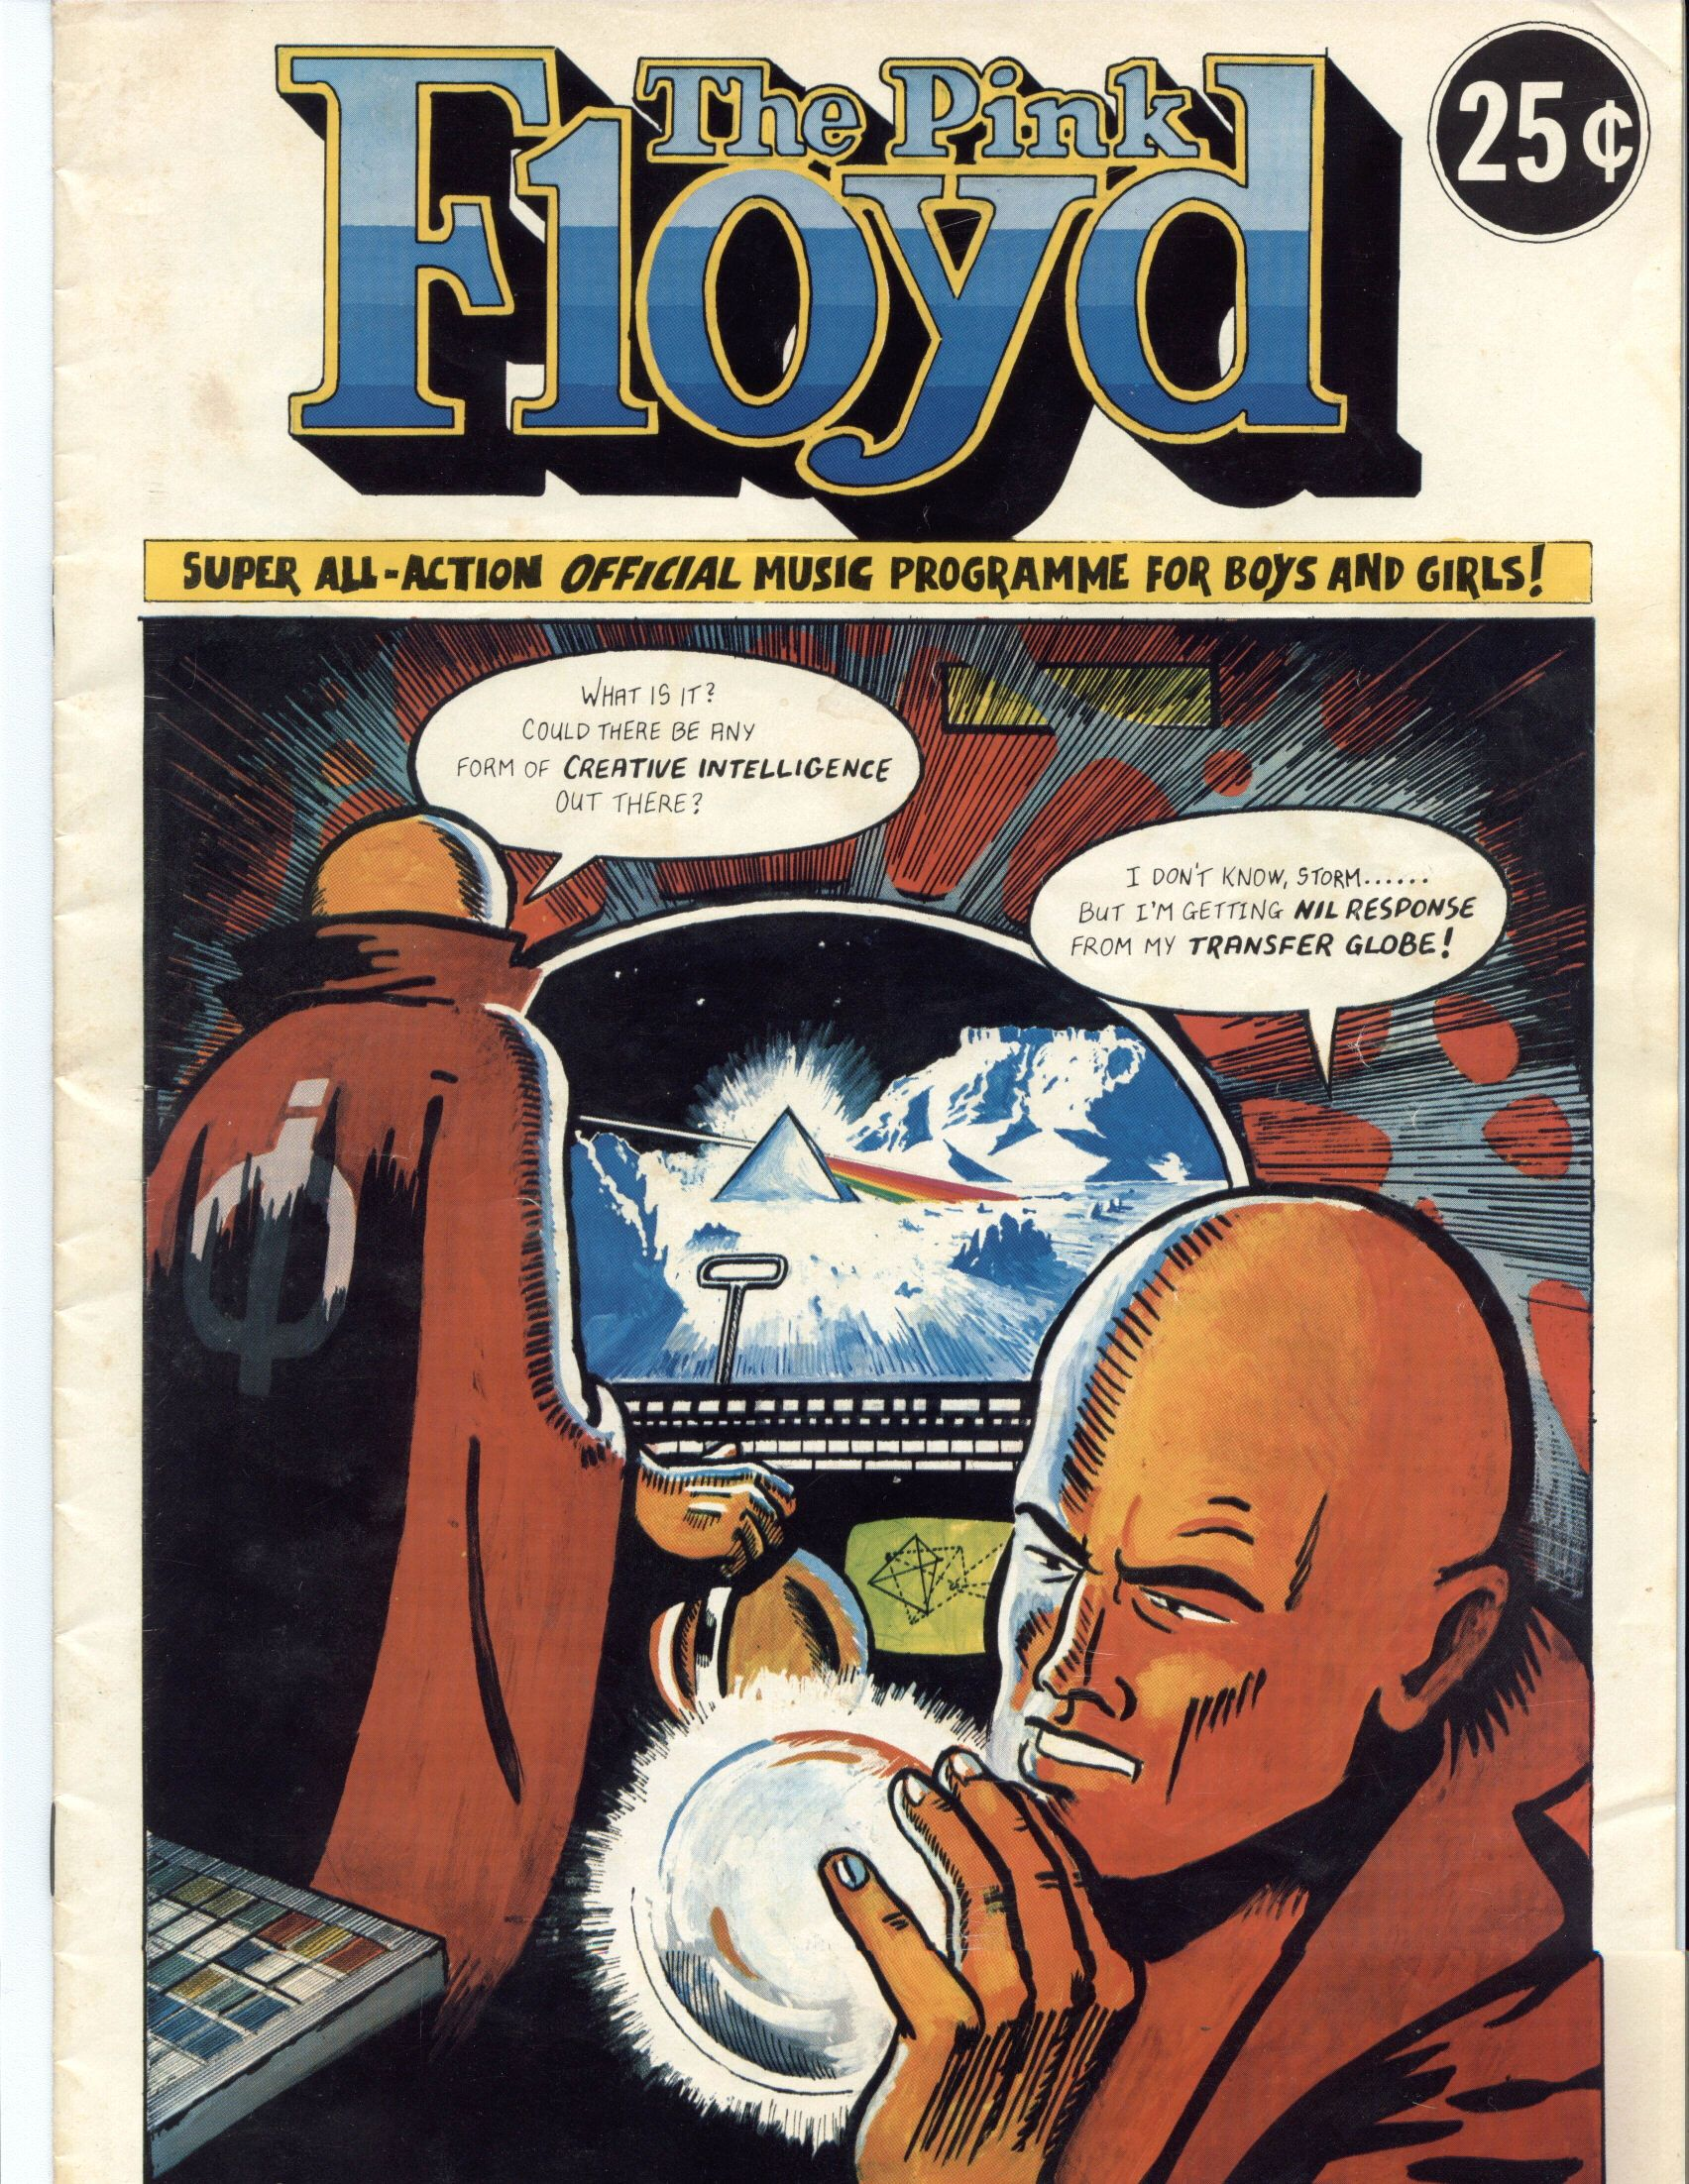 pinkfloyd1975tourcomicb Pink Floyd   Dark Side of the Moon Tour Comic Book (1975)